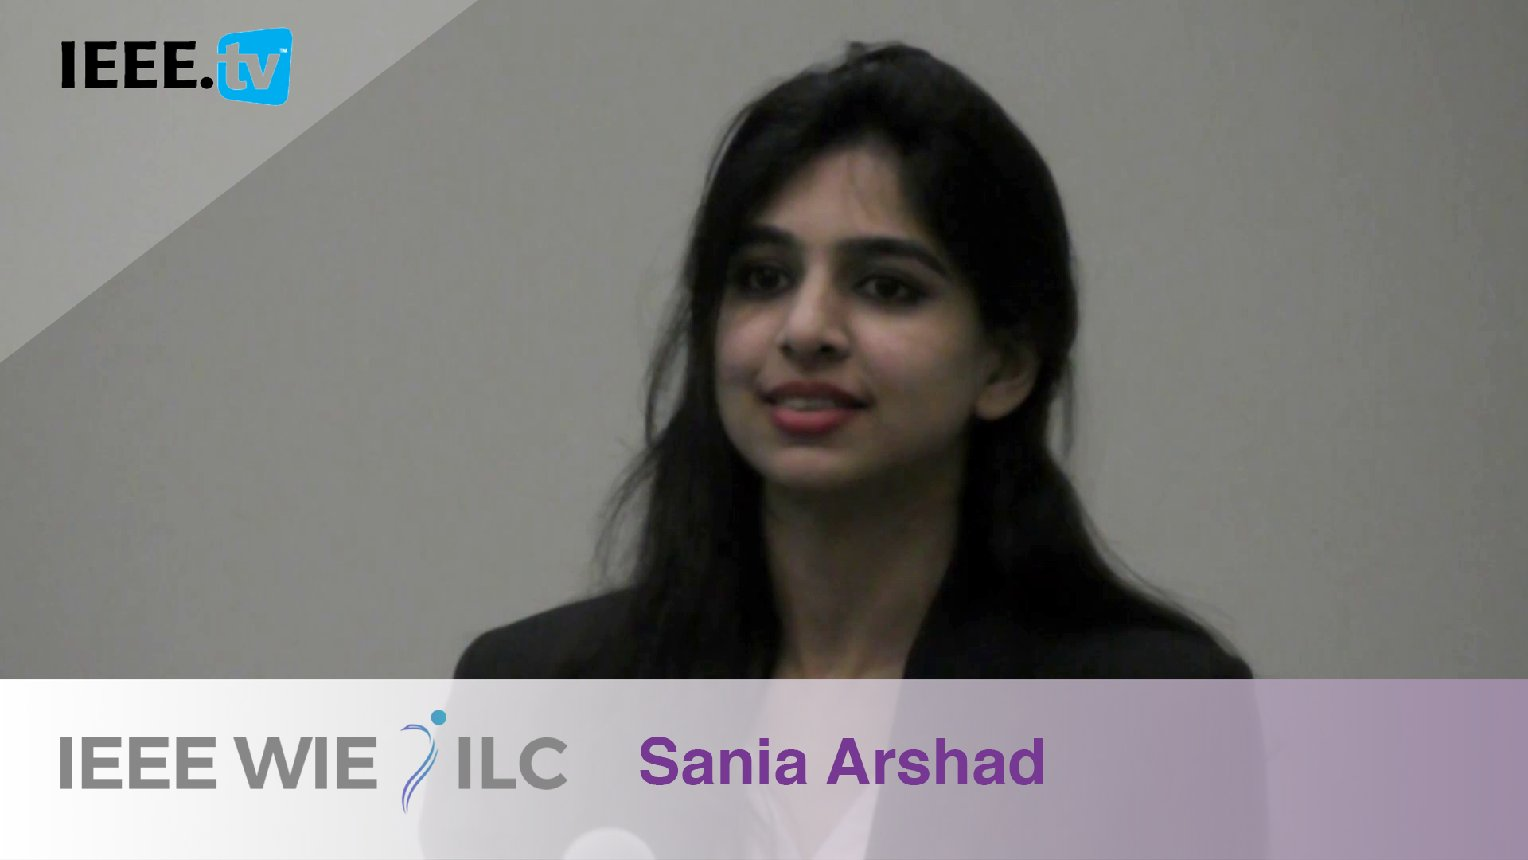 Sania Arshad: Affinity Group of the Year Honorable Mention - IEEE WIE ILC Awards 2017